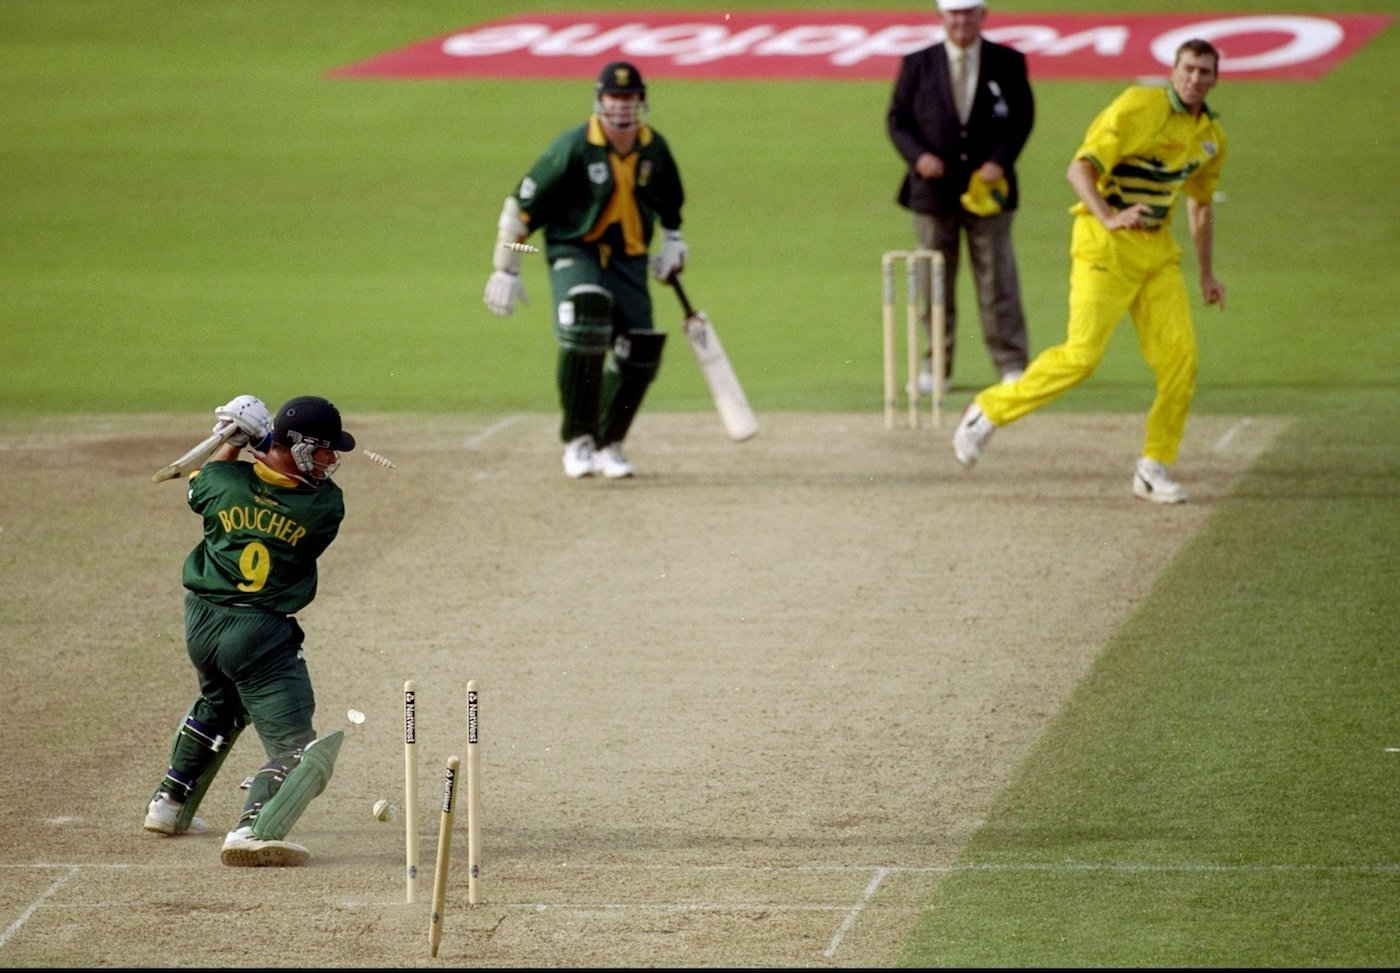 Mark Boucher: five off ten balls and then a merciful deliverance in being bowled by McGrath